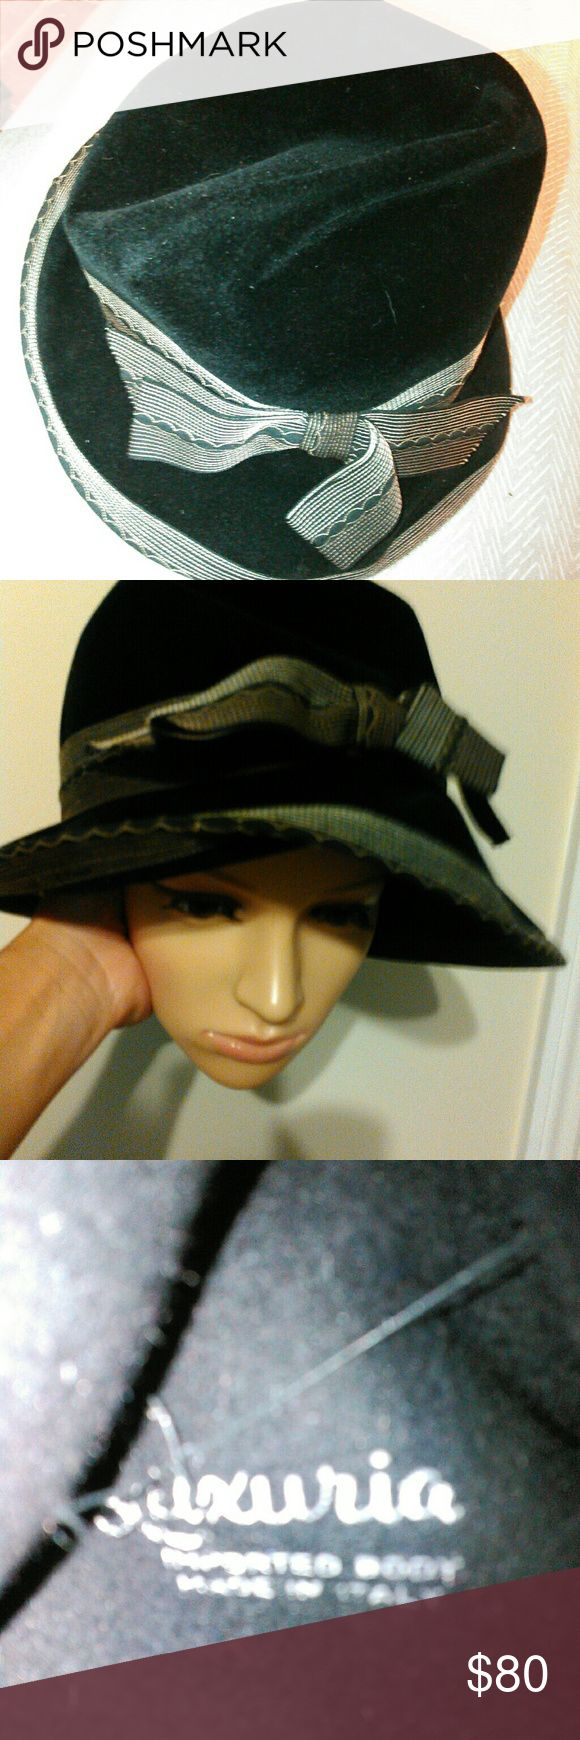 Vintage Italian Hat Beautiful one of its own!  I've never worn it! I bought it at a antique market.  I love it but I gotta let go of some of my collection! I can't find the exact one! Accessories Hats